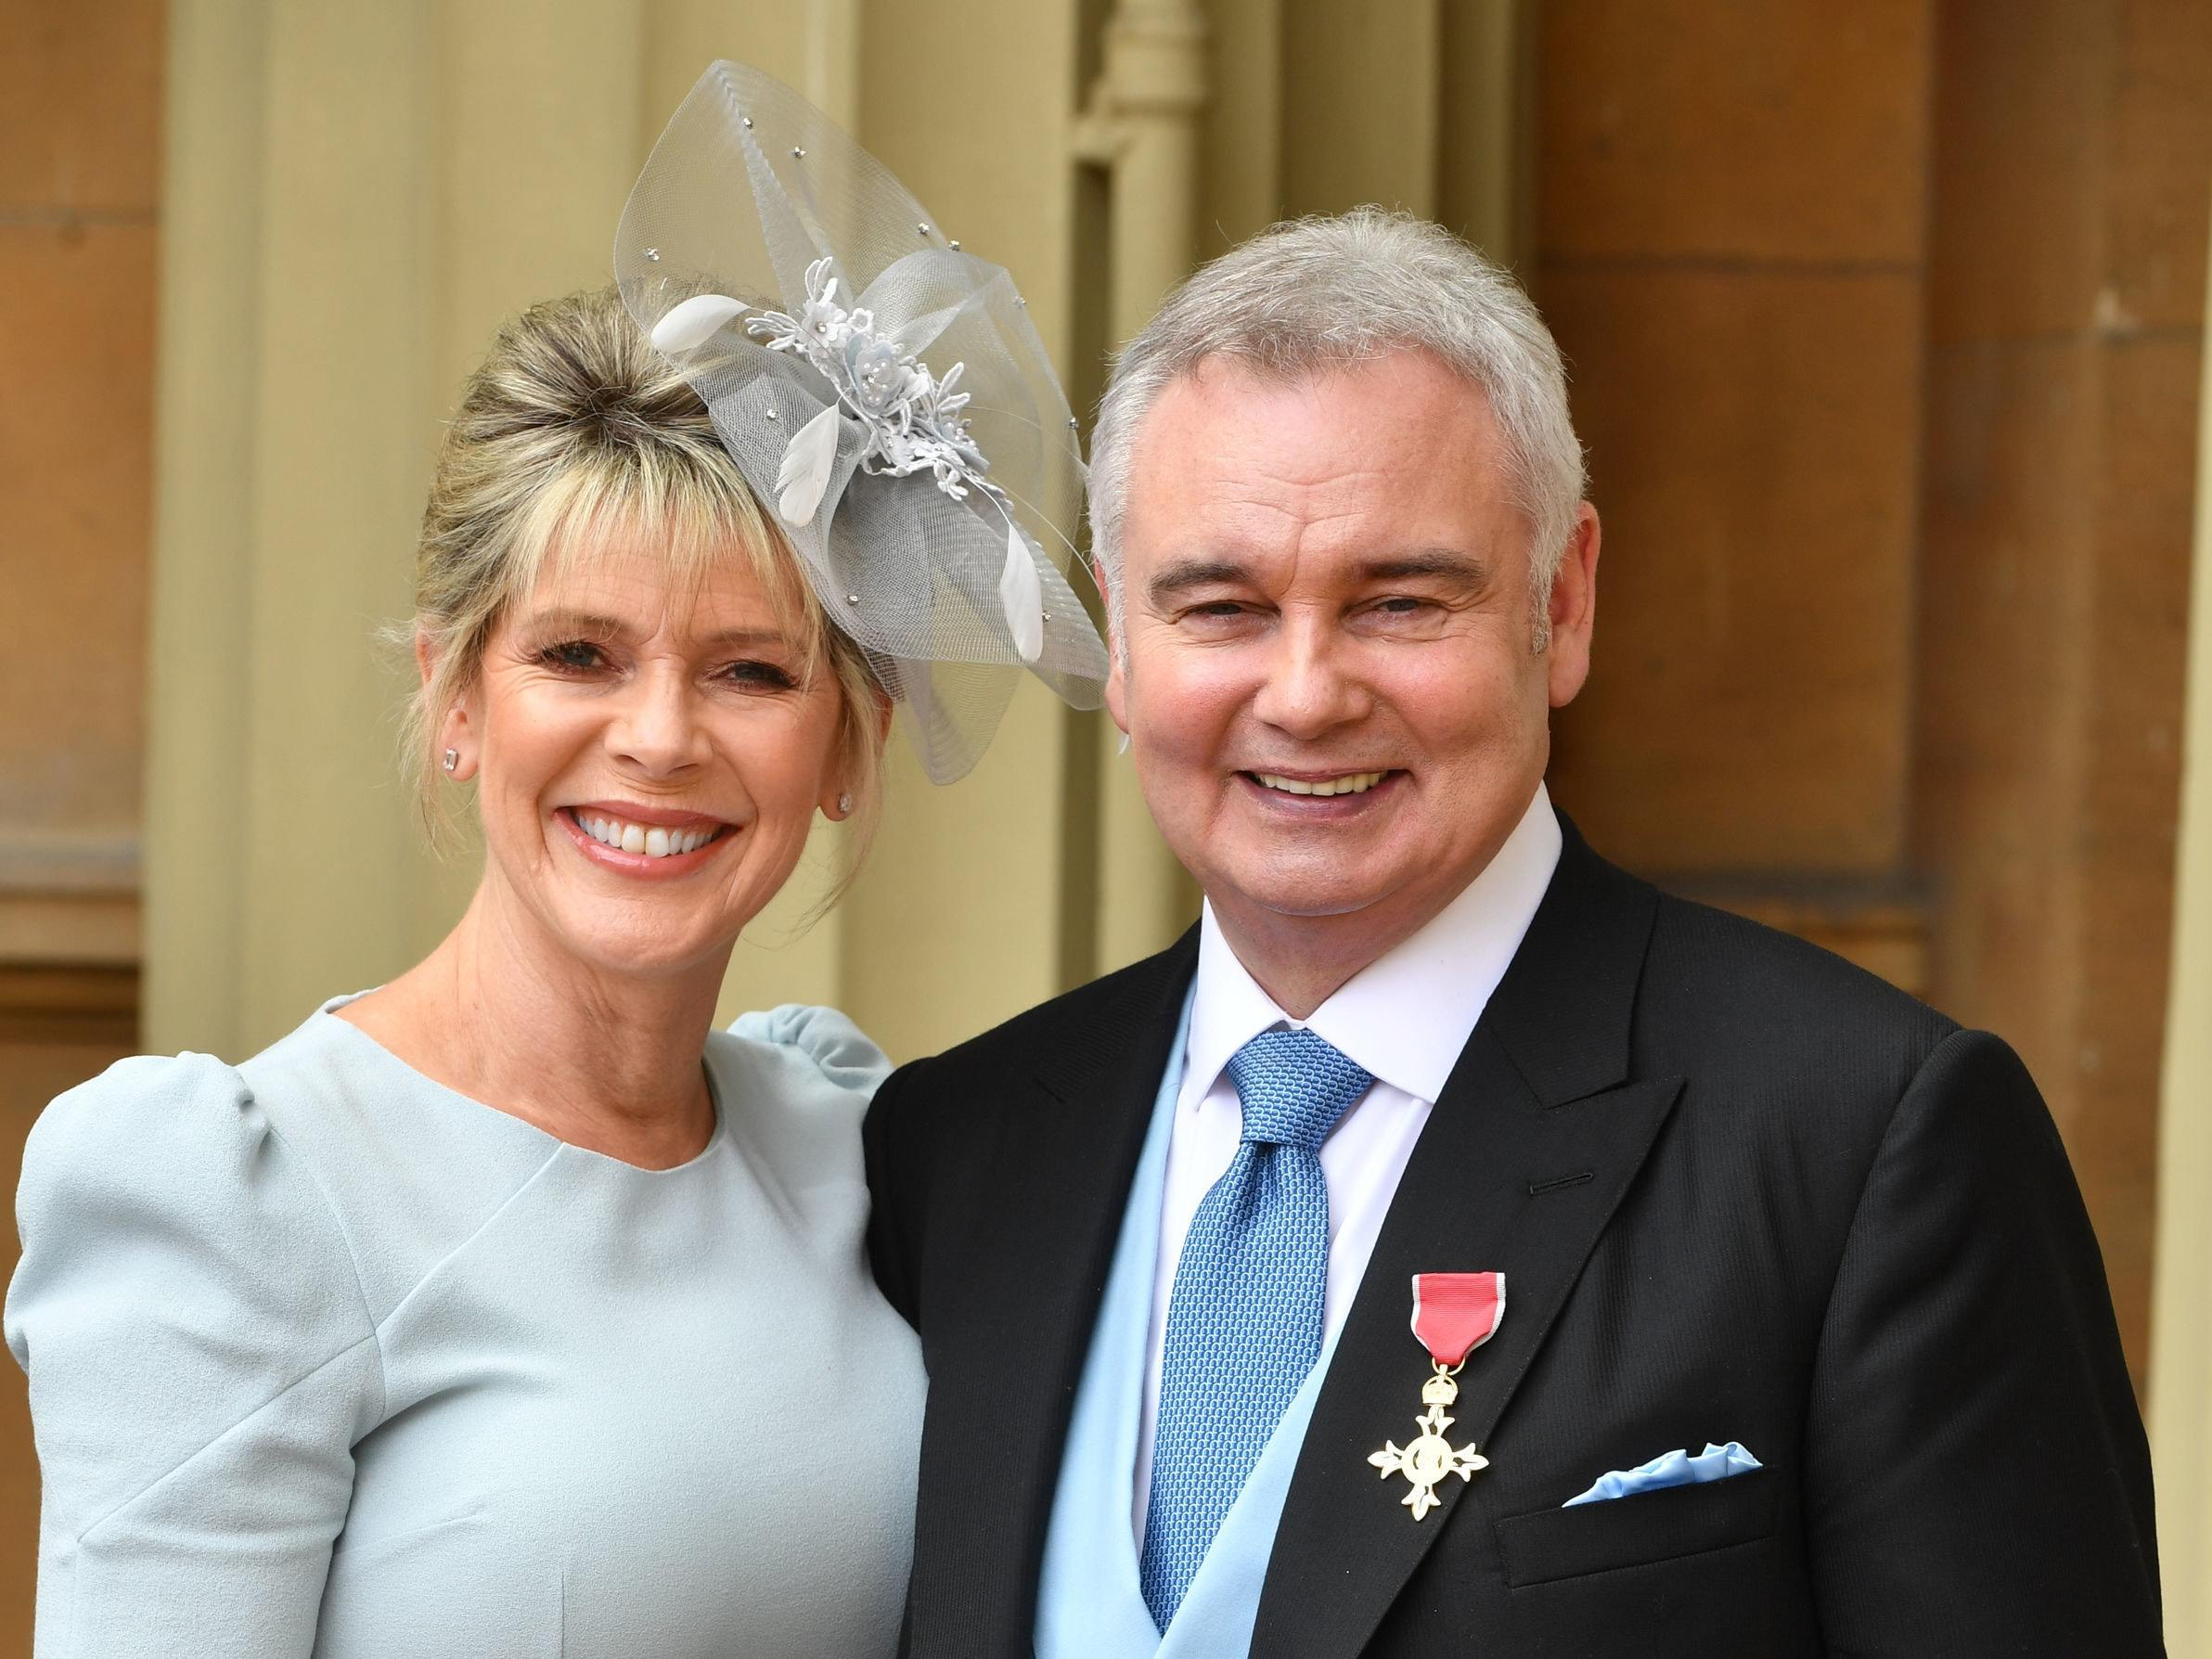 Ruth Langsford sends sweet message to Eamonn Holmes as he collects OBE from Buckingham Palace